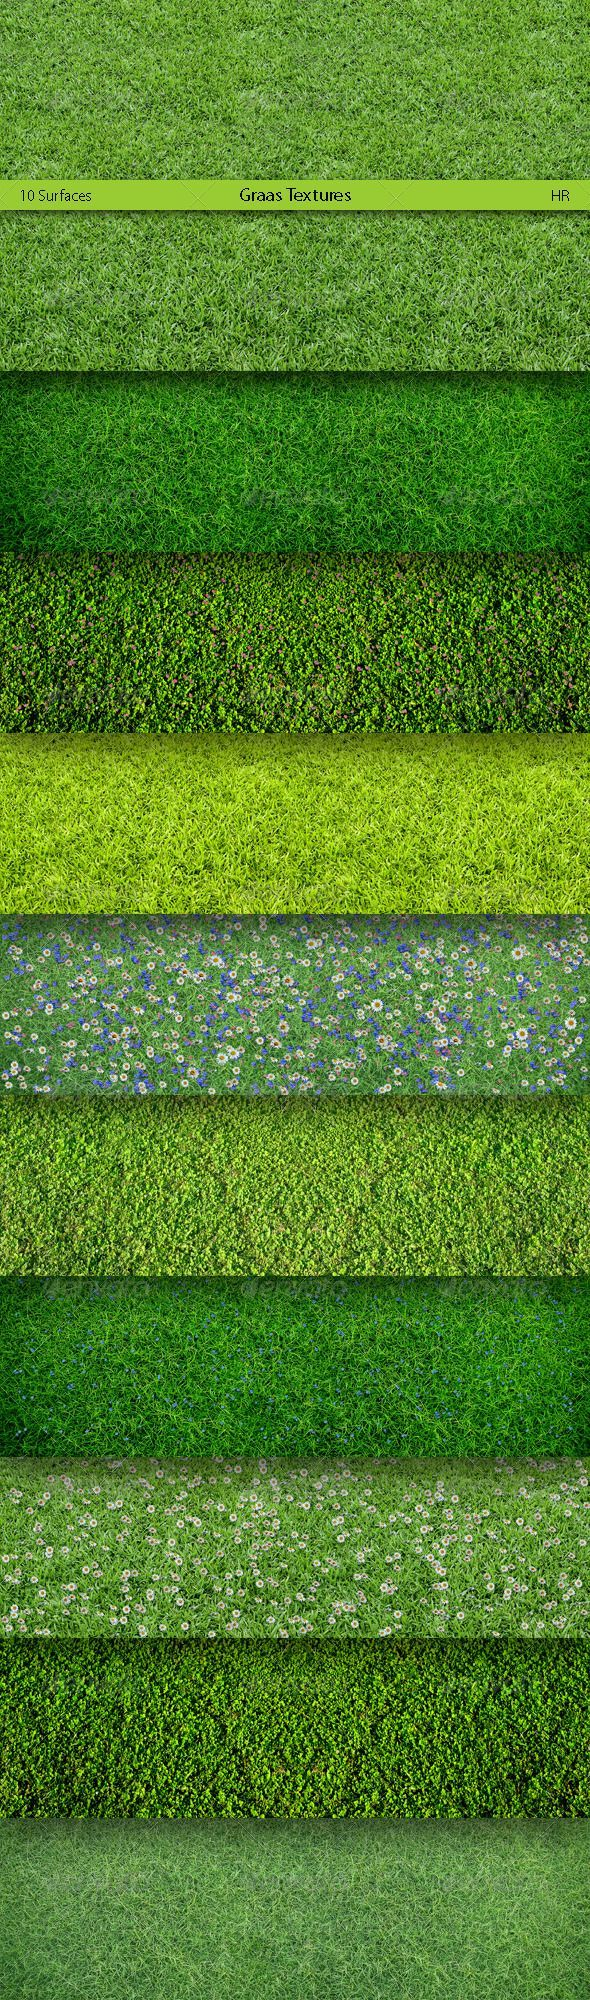 grass background texture - photo #40